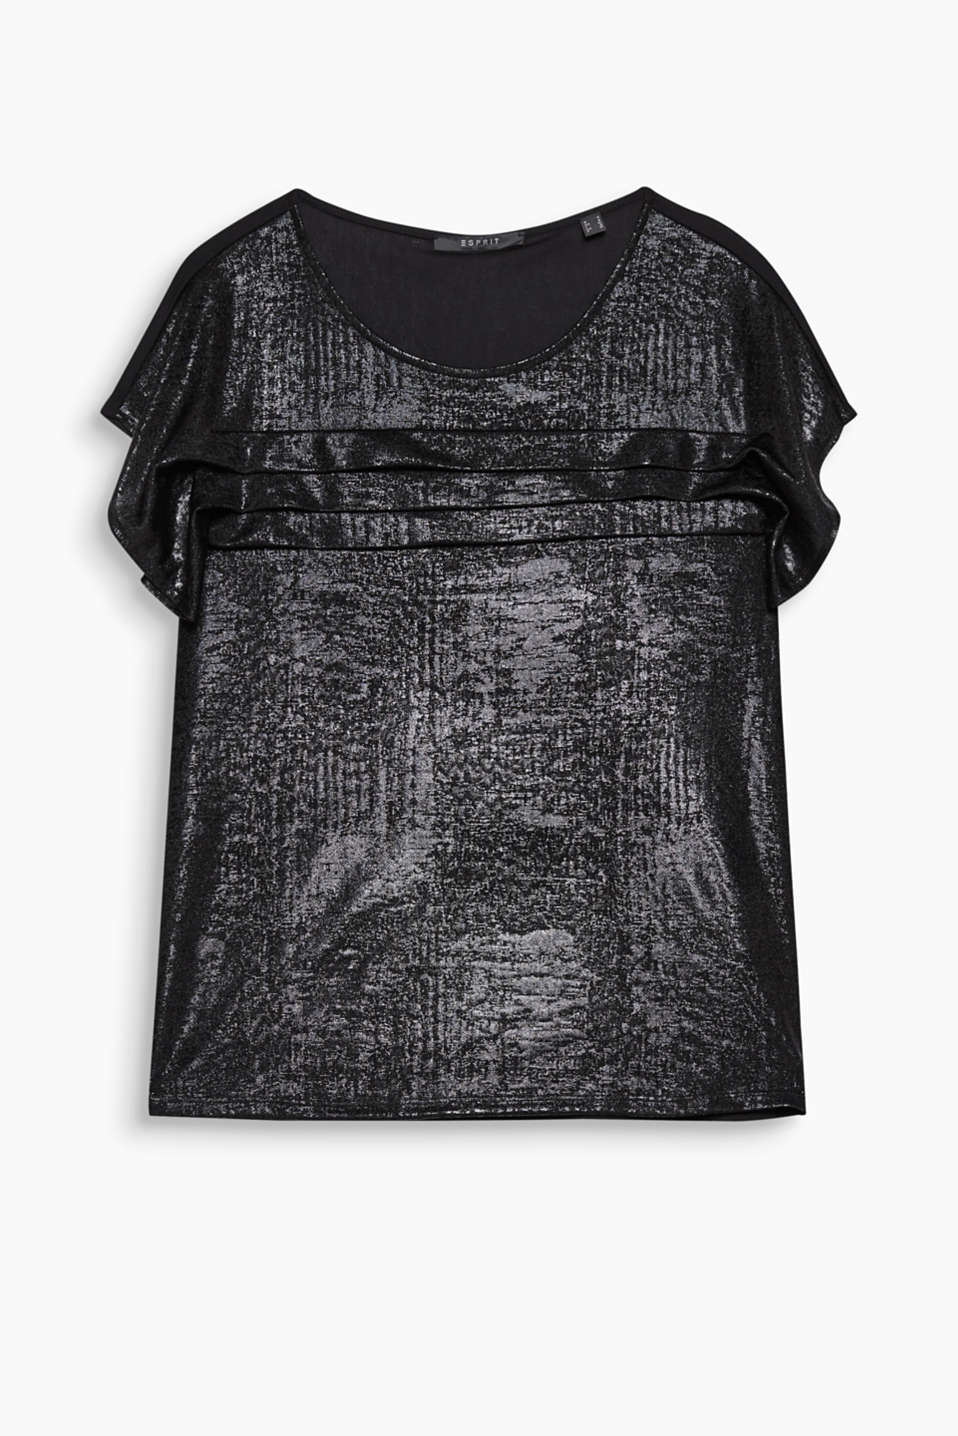 Simply brilliant: coated top with decorative pleat details for an edgy, glamorous look!